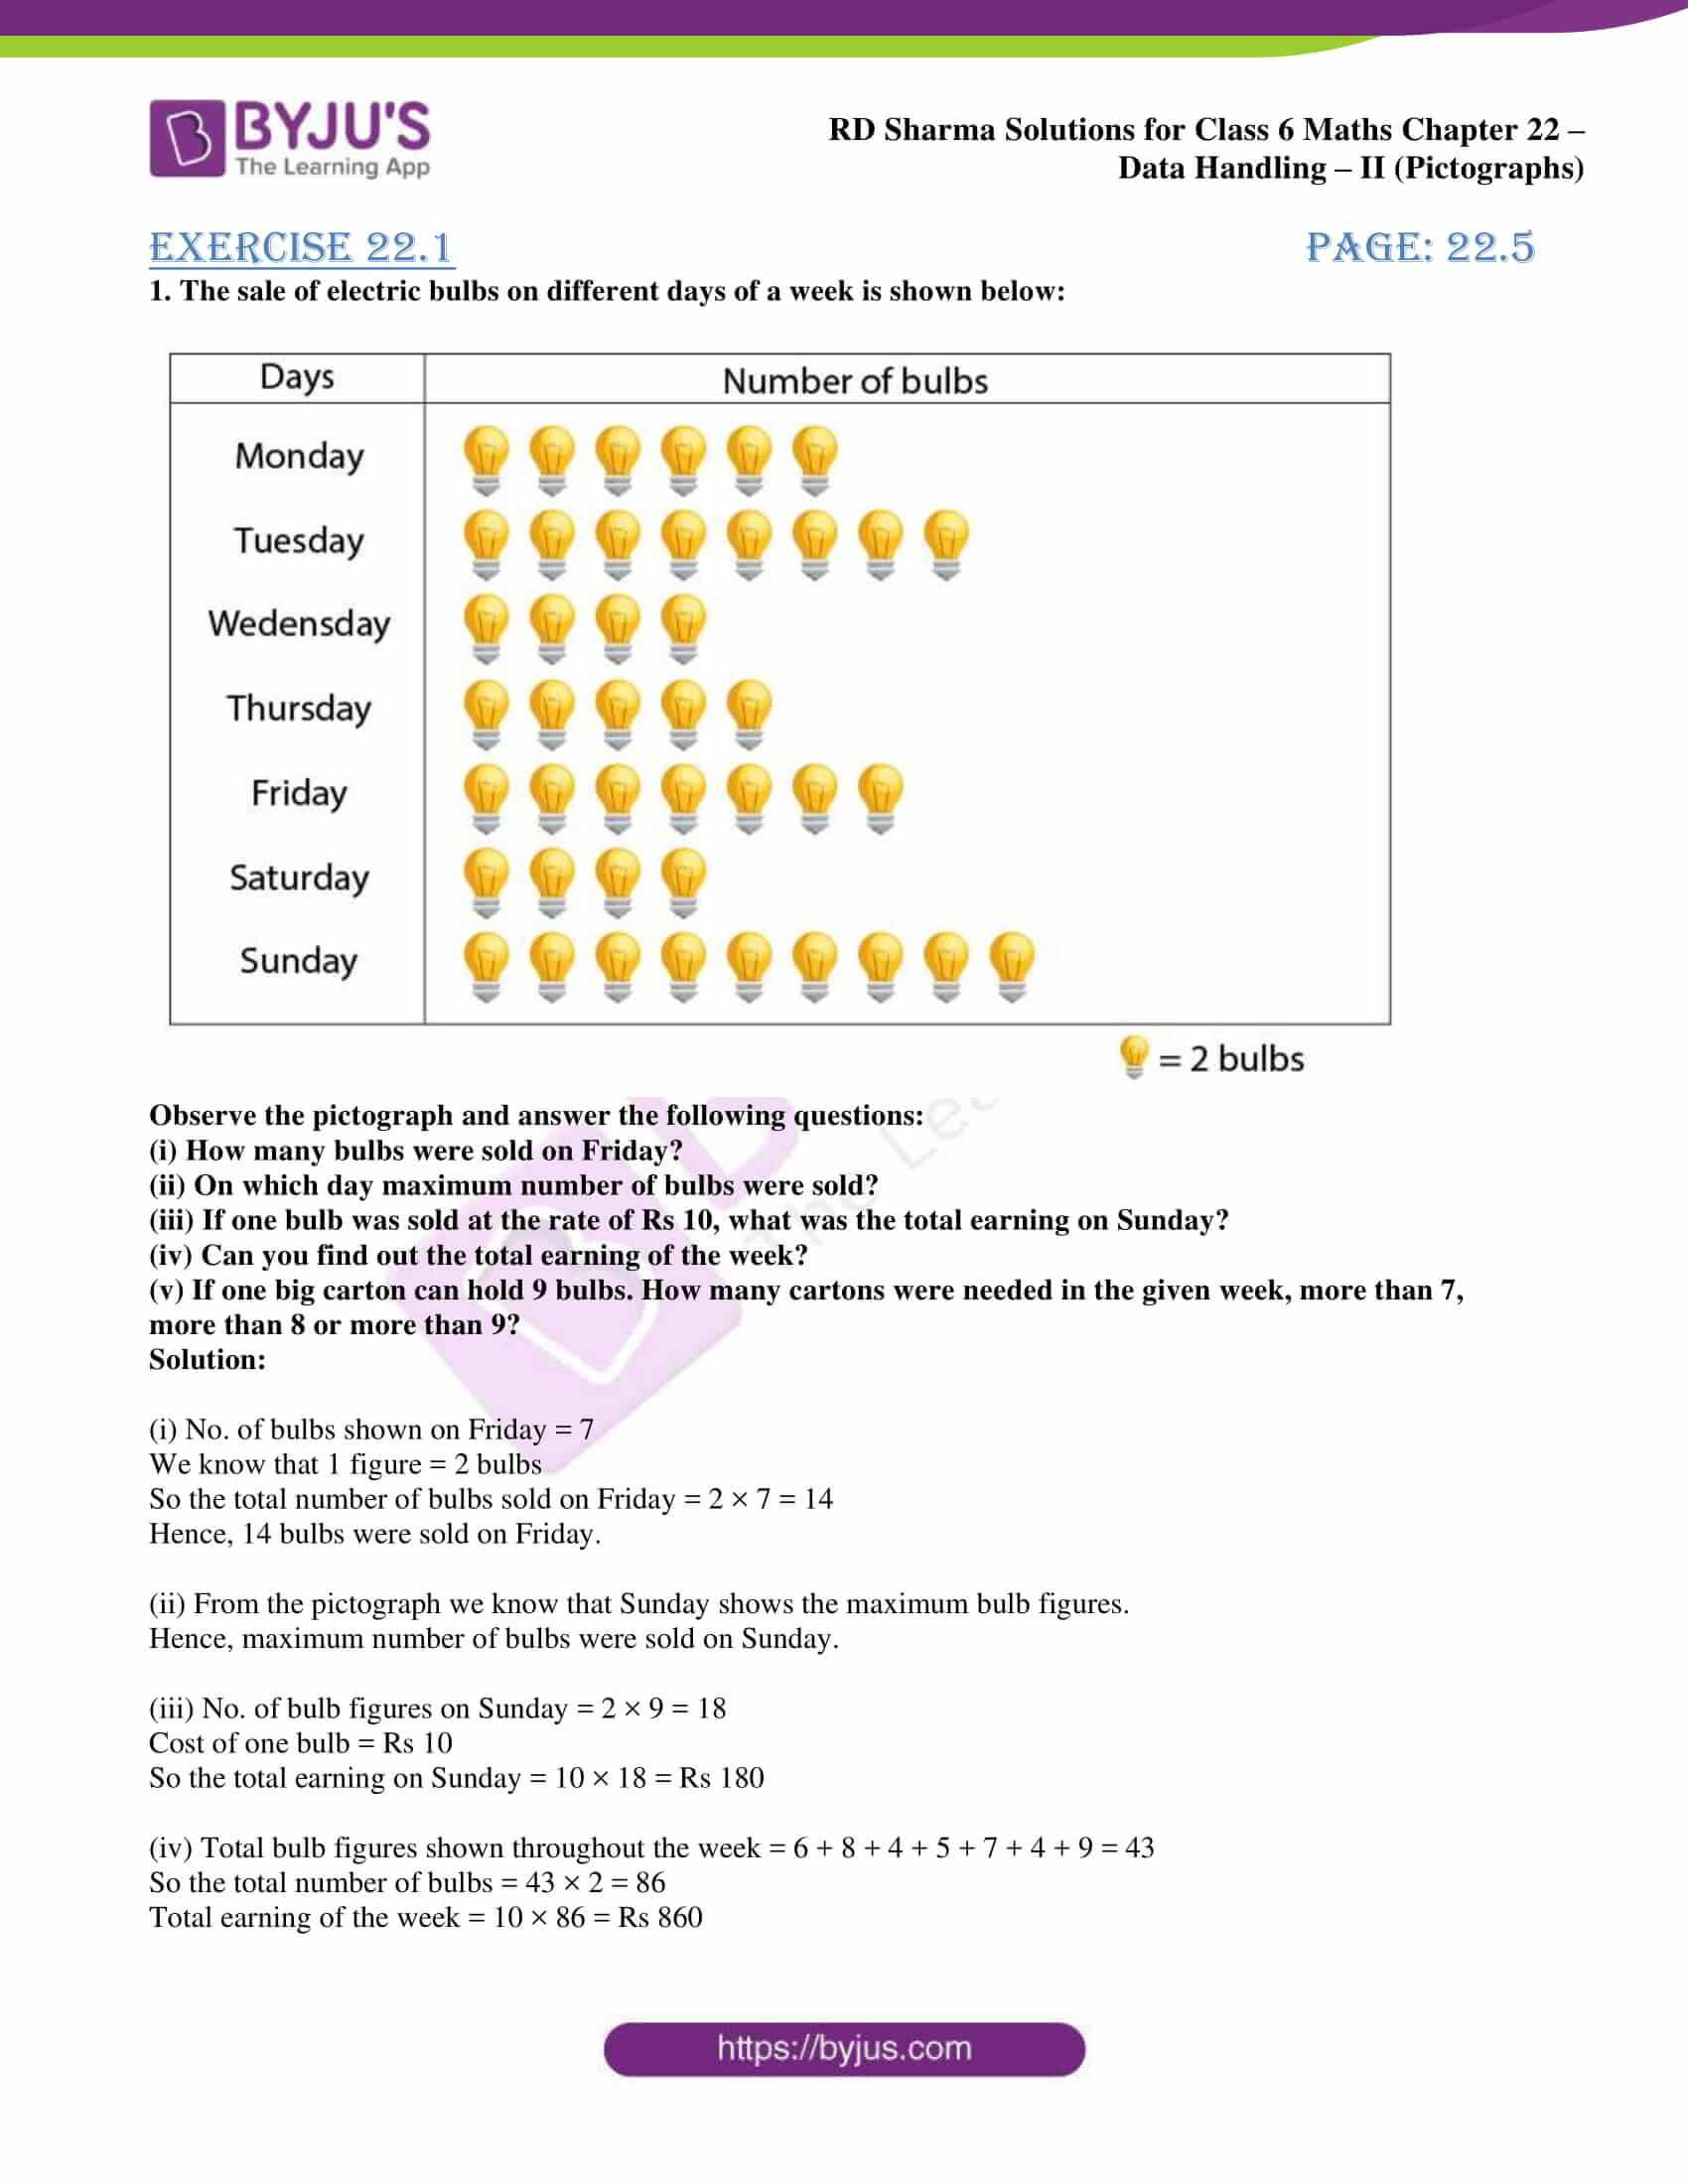 Rd Sharma Solutions For Class 6 Chapter 22 Data Handling